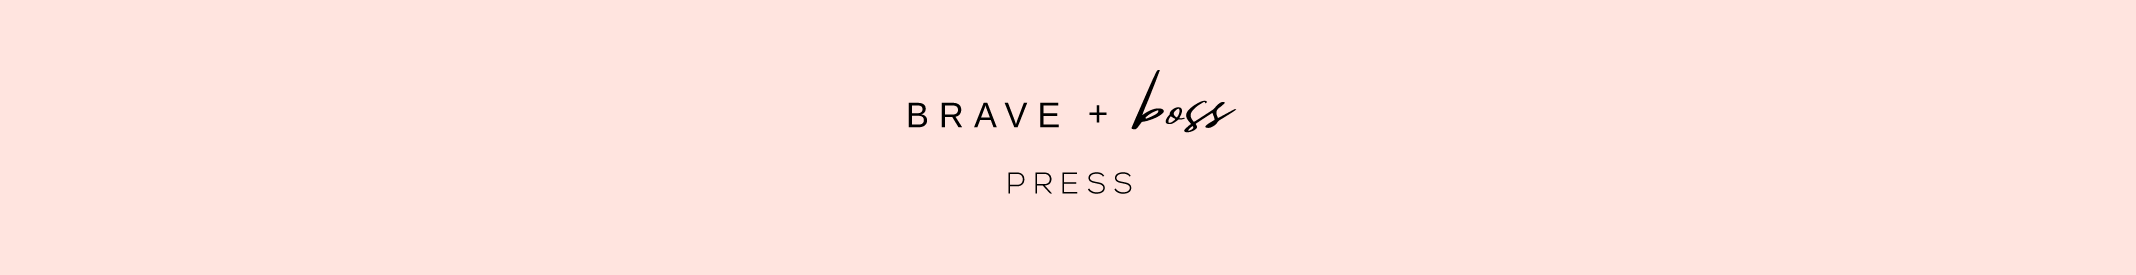 brave and boss kristi soomer press